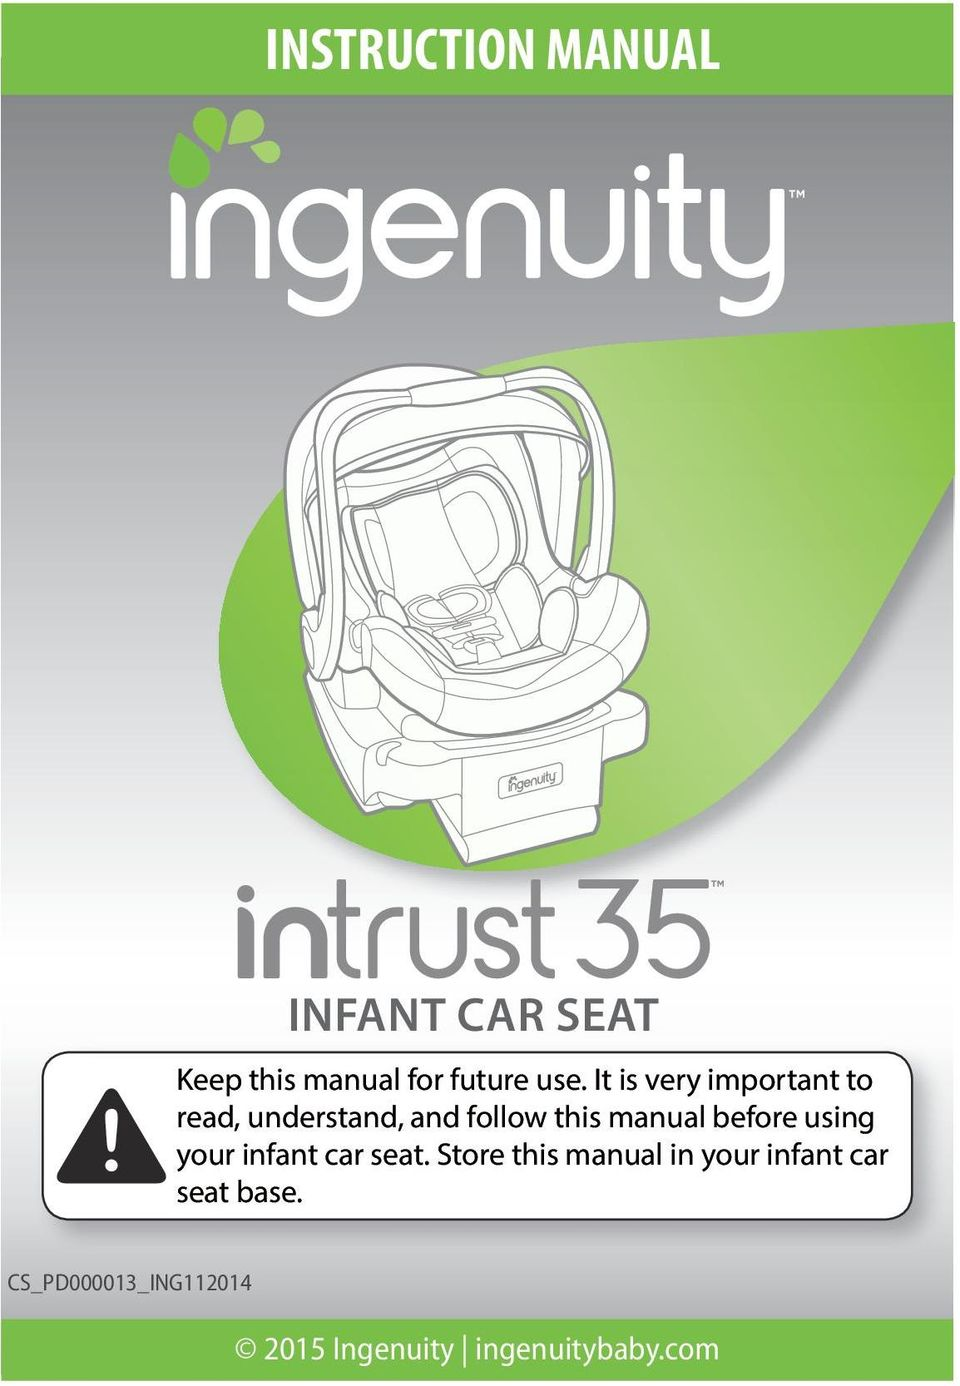 Before Using Your Infant Car Seat